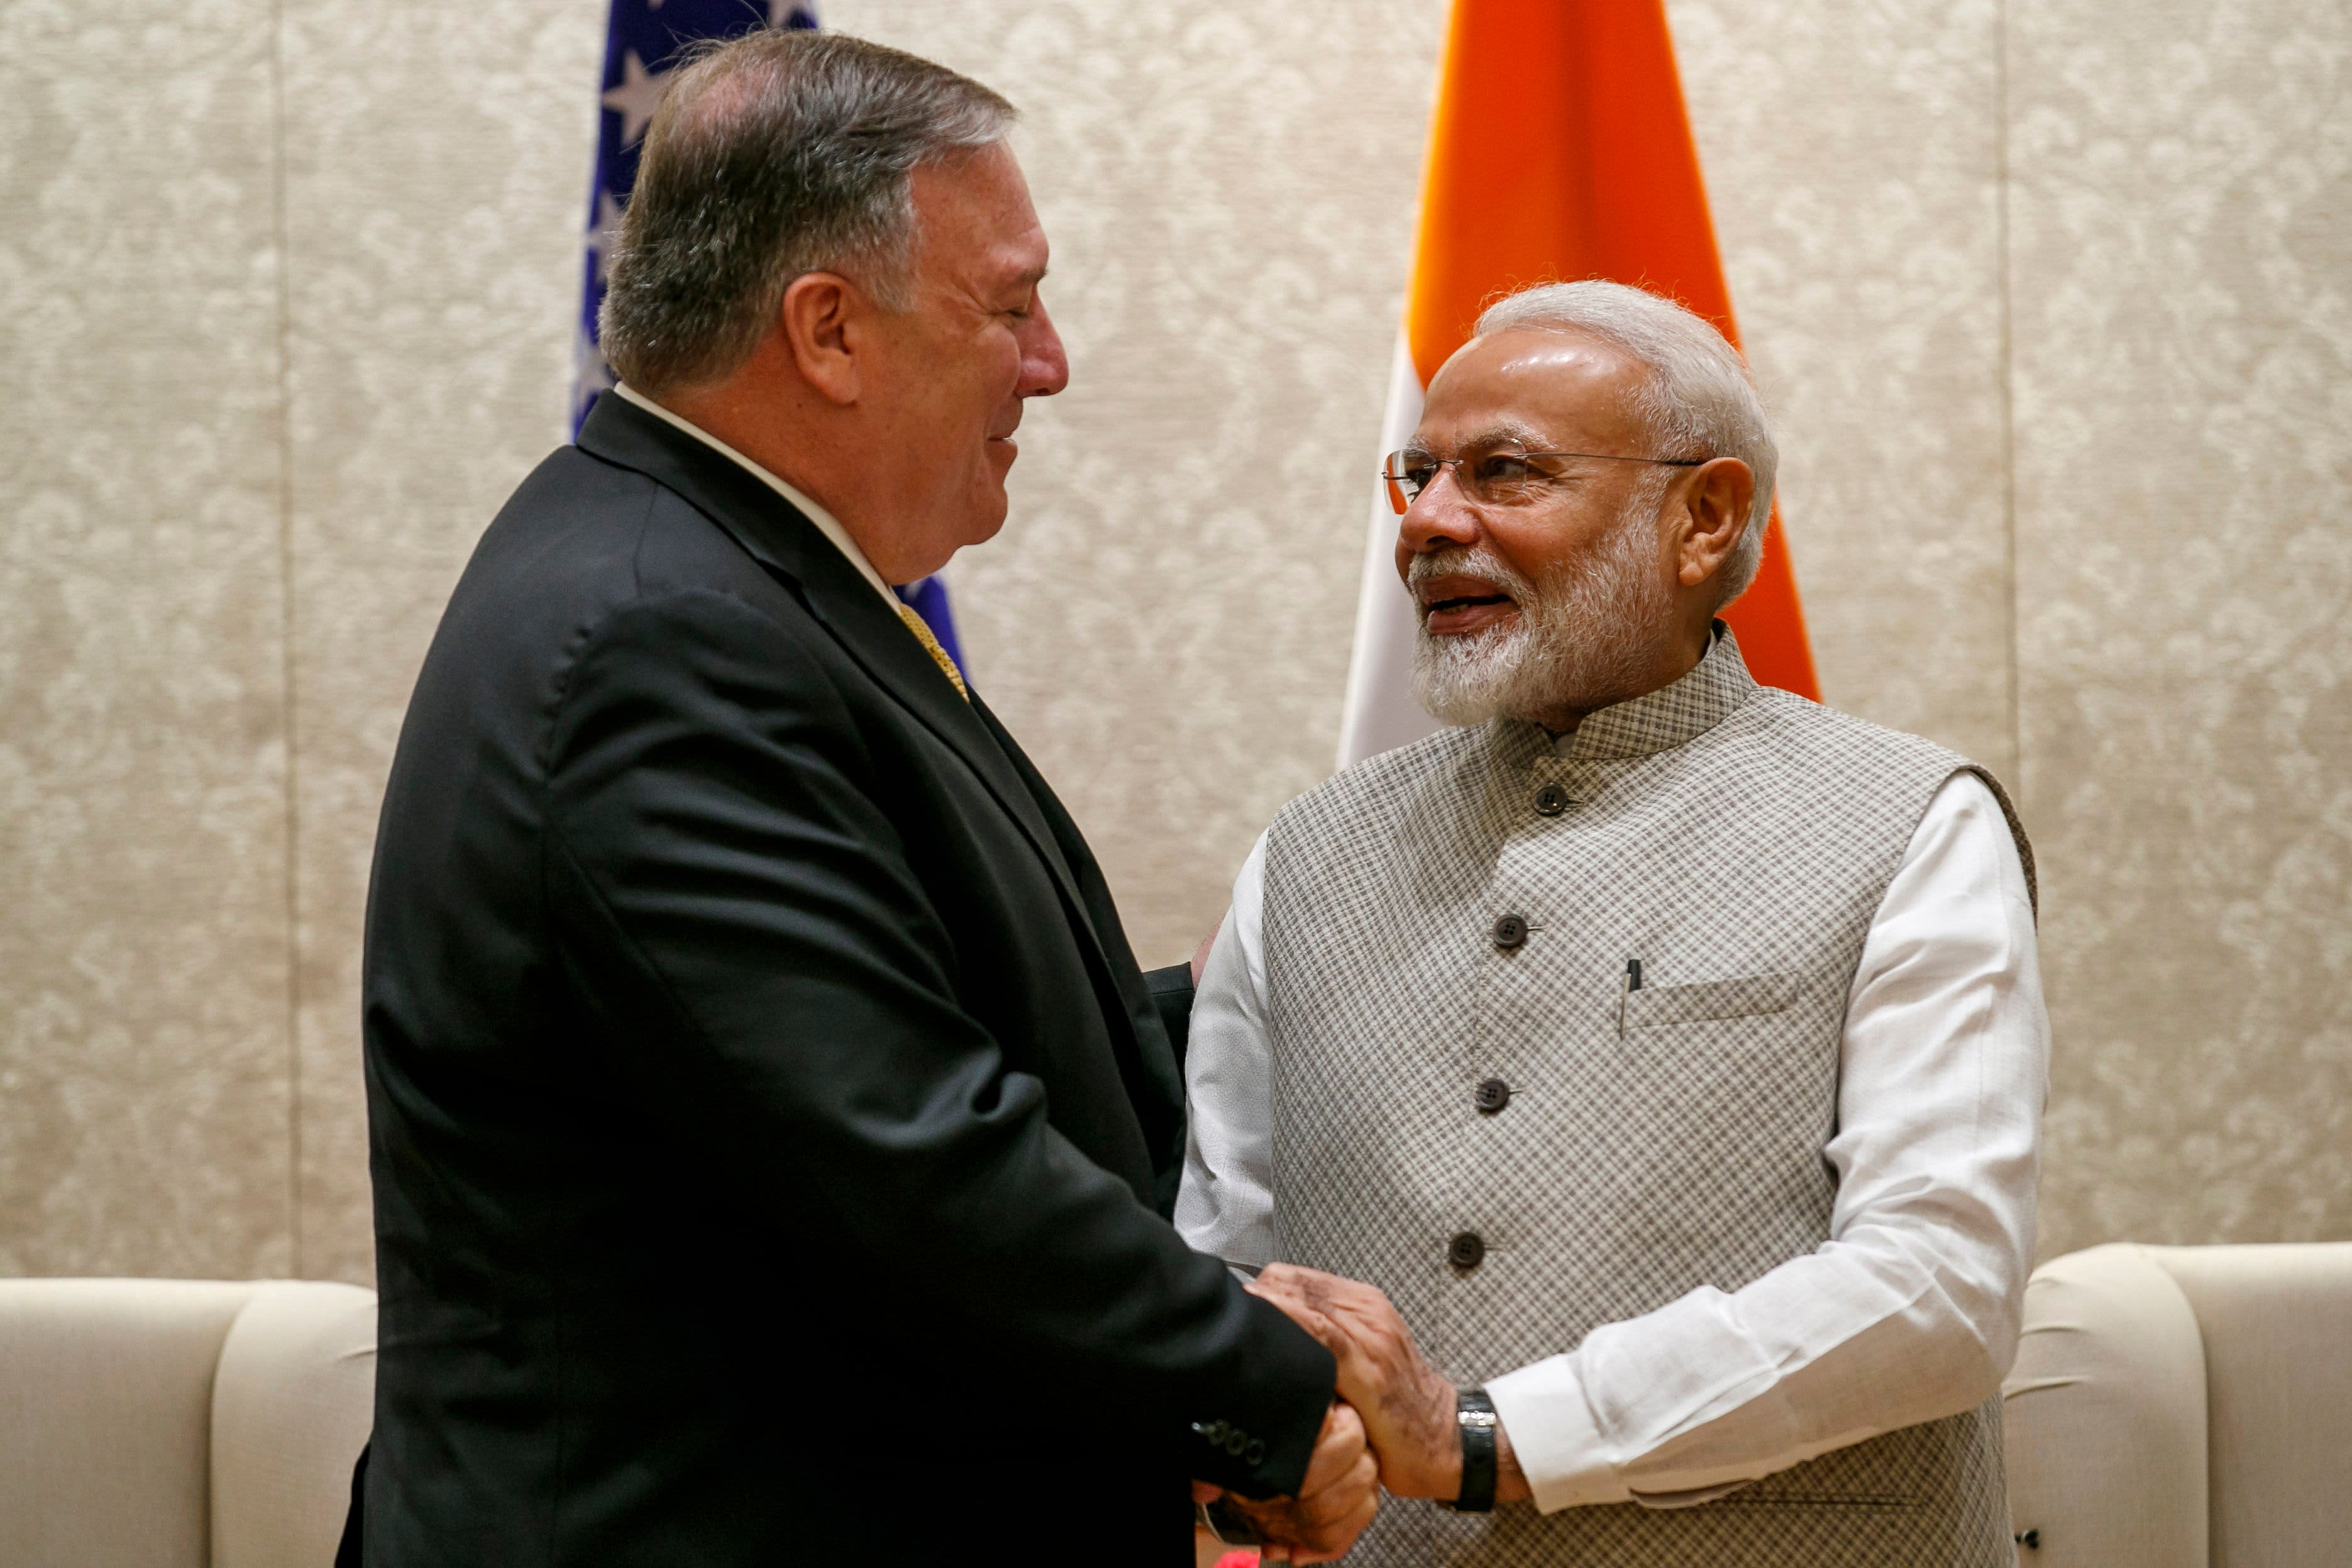 Pompeo meets Indian leader amid trade tensions, Iran crisis